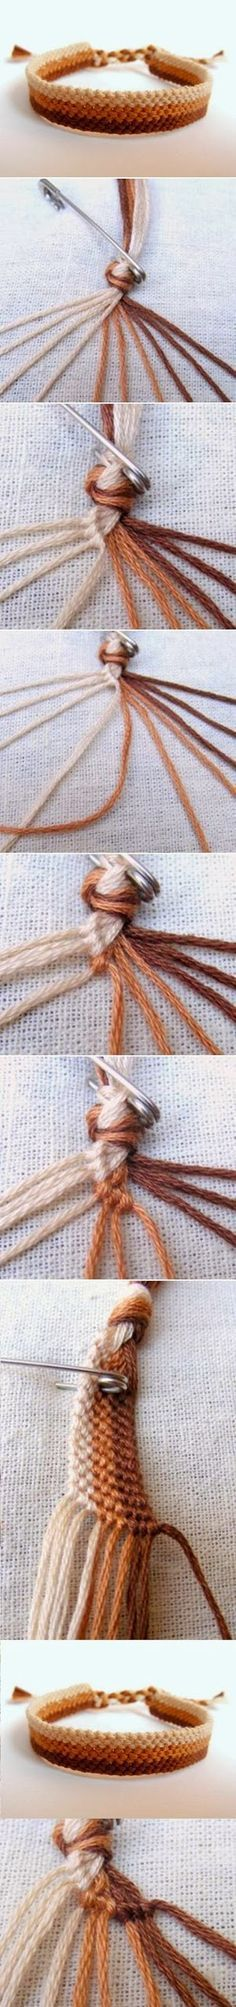 DIY : Easy Weave Bracelet | DIY & Crafts Tutorials